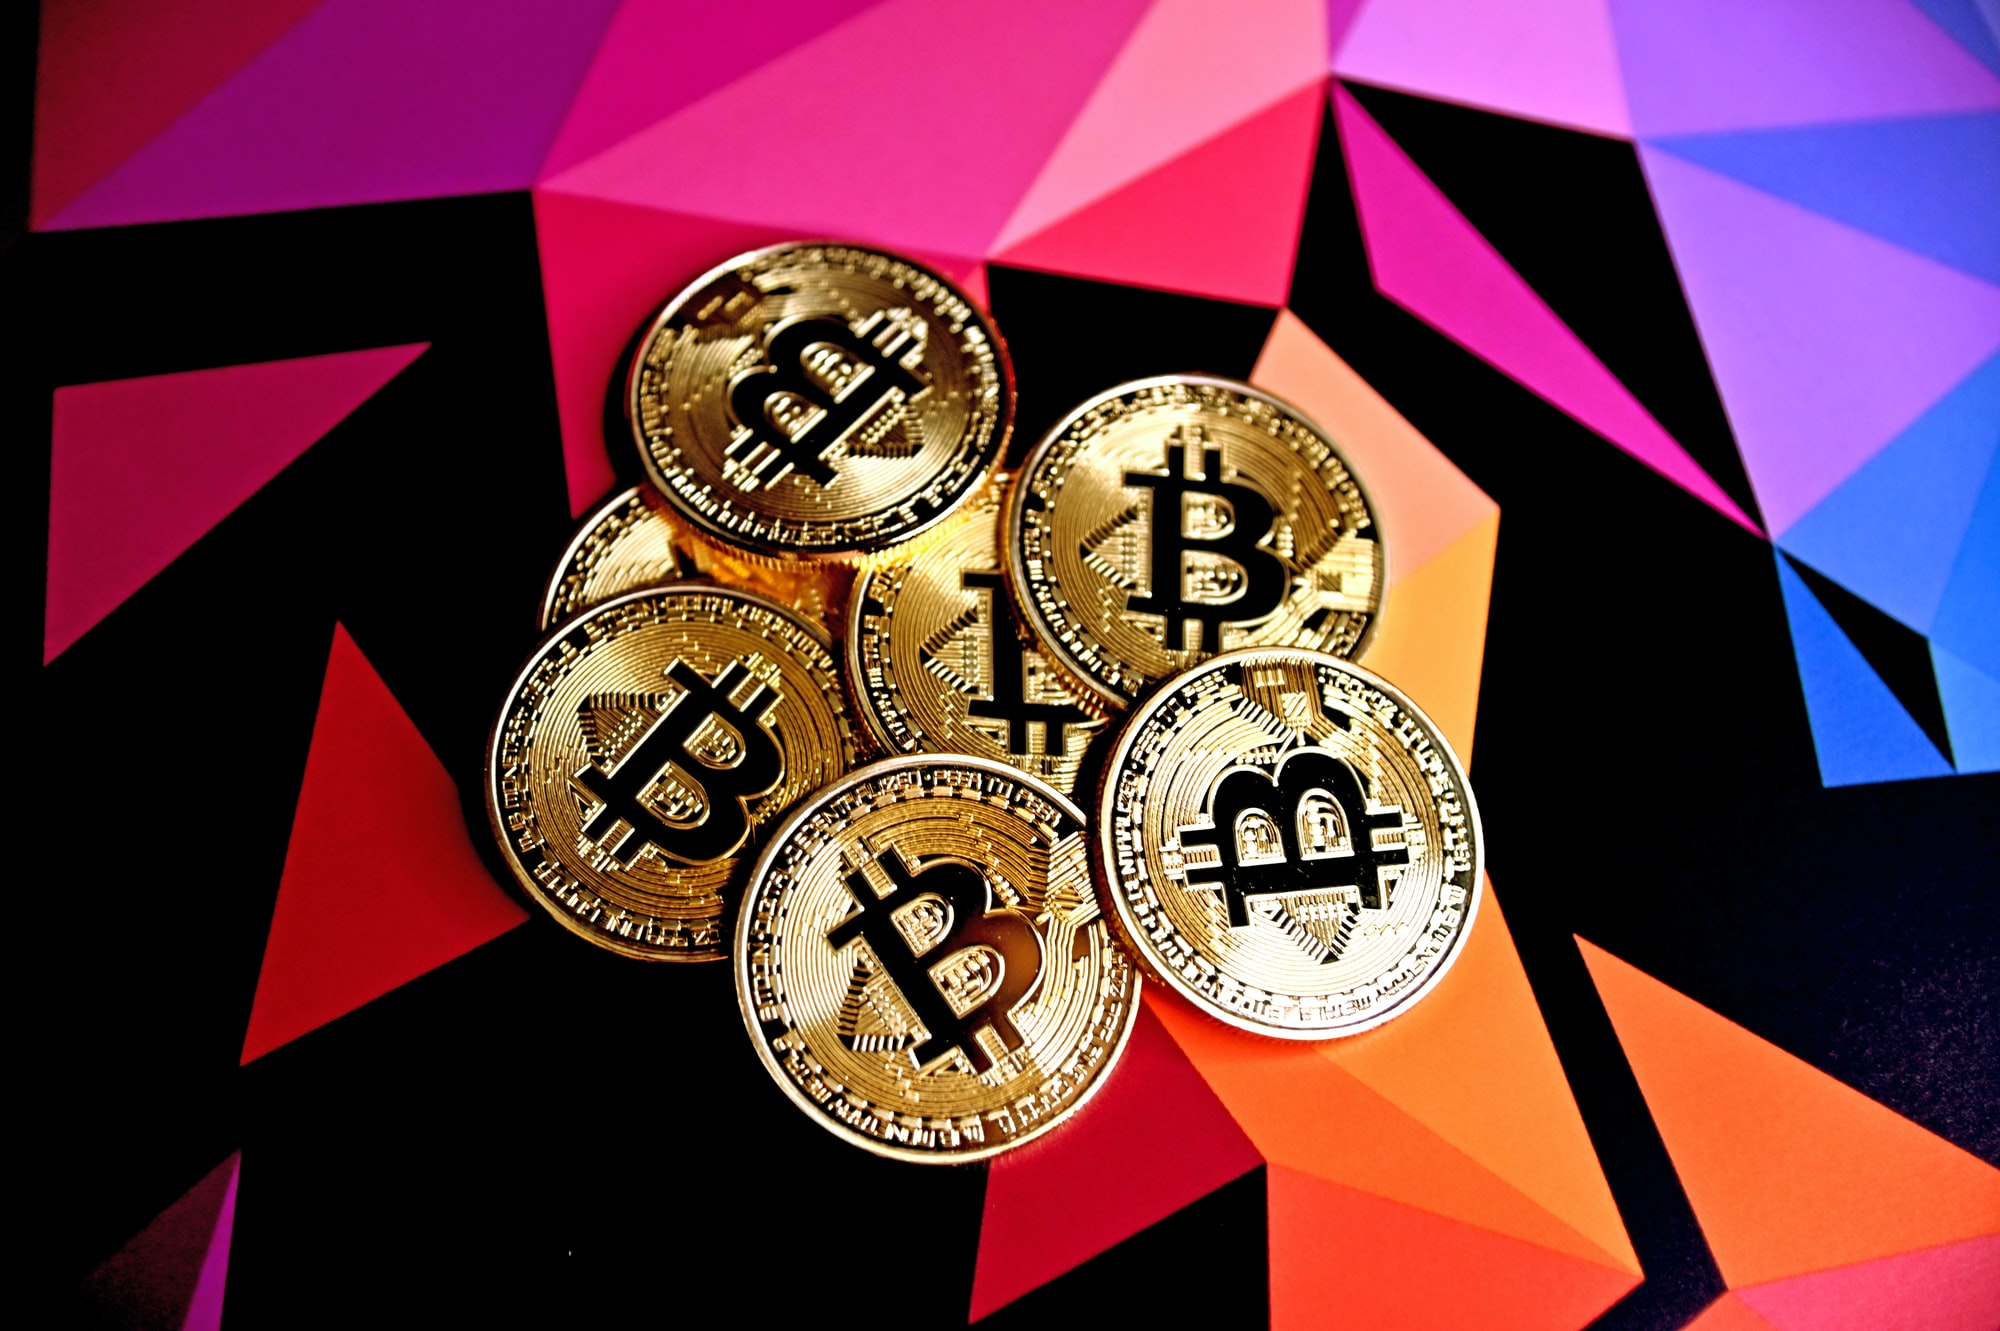 Bitcoins on a multi-colored background.